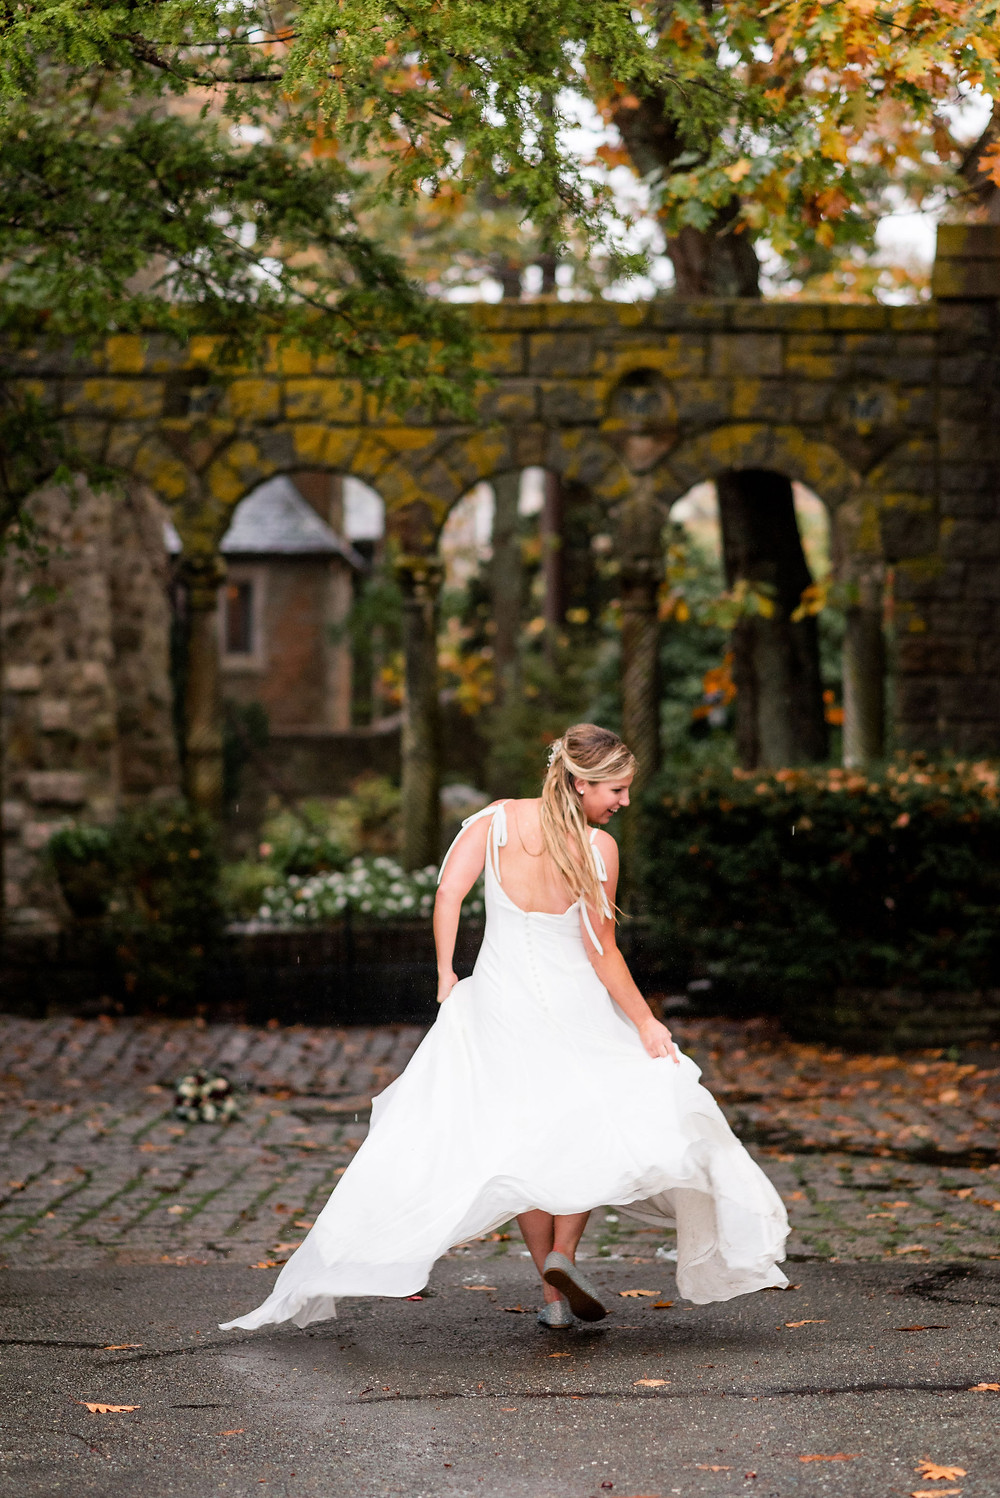 bride twirls in her wedding dress. fall foliage and castle architecture in background